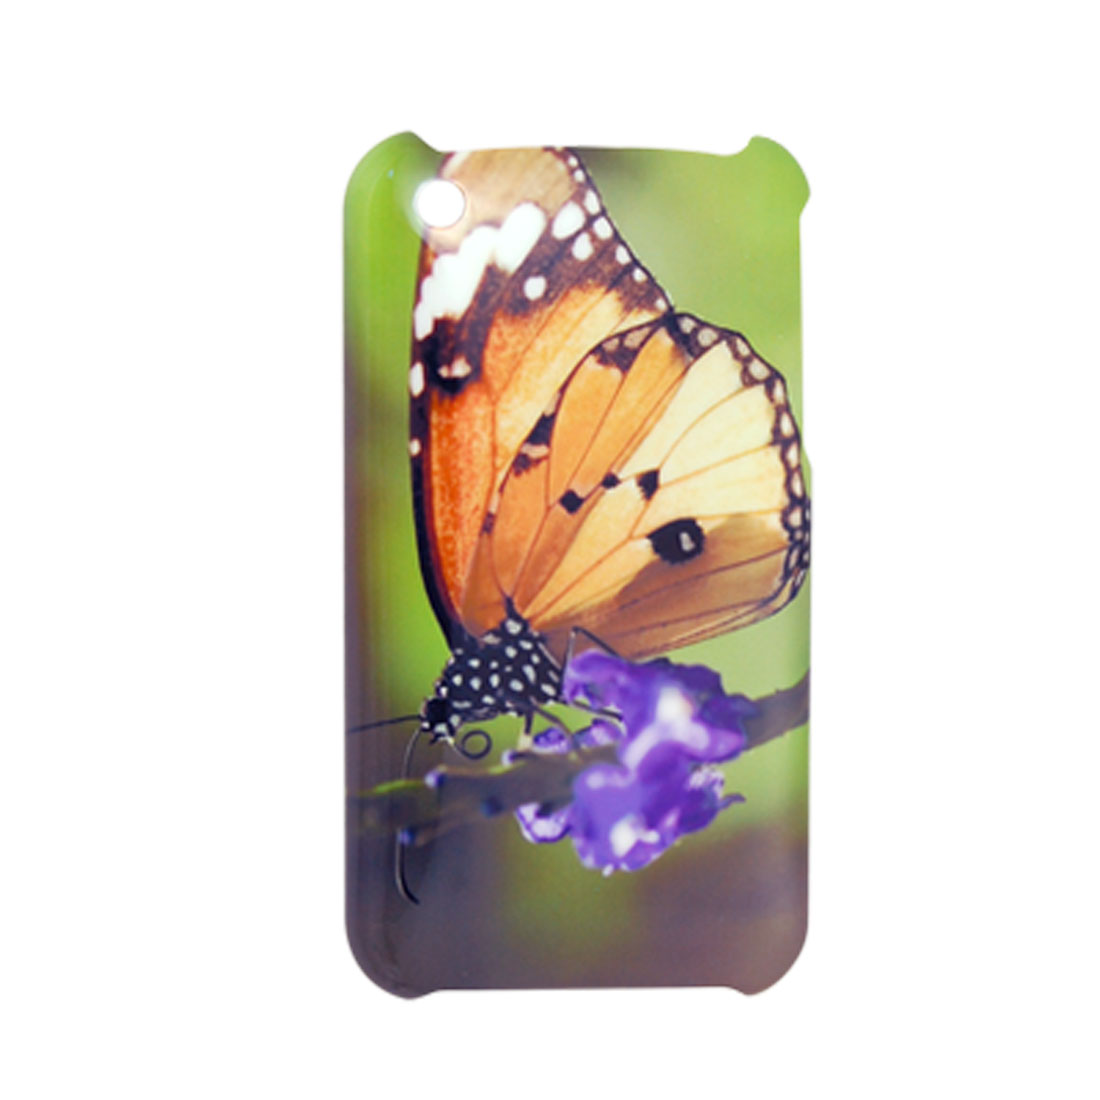 Butterfly Printed Plastic Back Cover for iPhone 3G